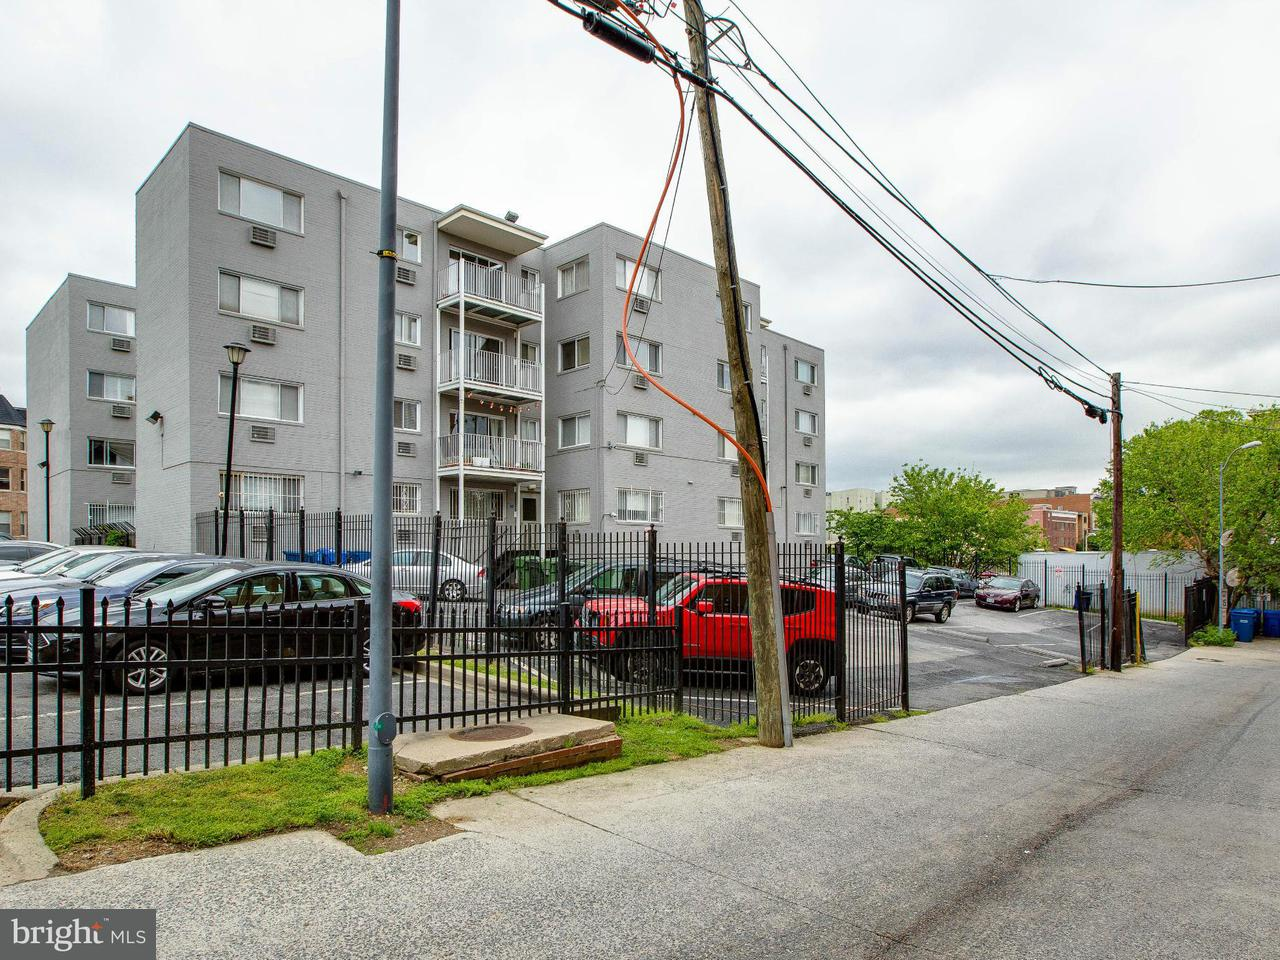 Additional photo for property listing at 1420 CLIFTON ST NW #401 1420 CLIFTON ST NW #401 Washington, District Of Columbia 20009 Vereinigte Staaten